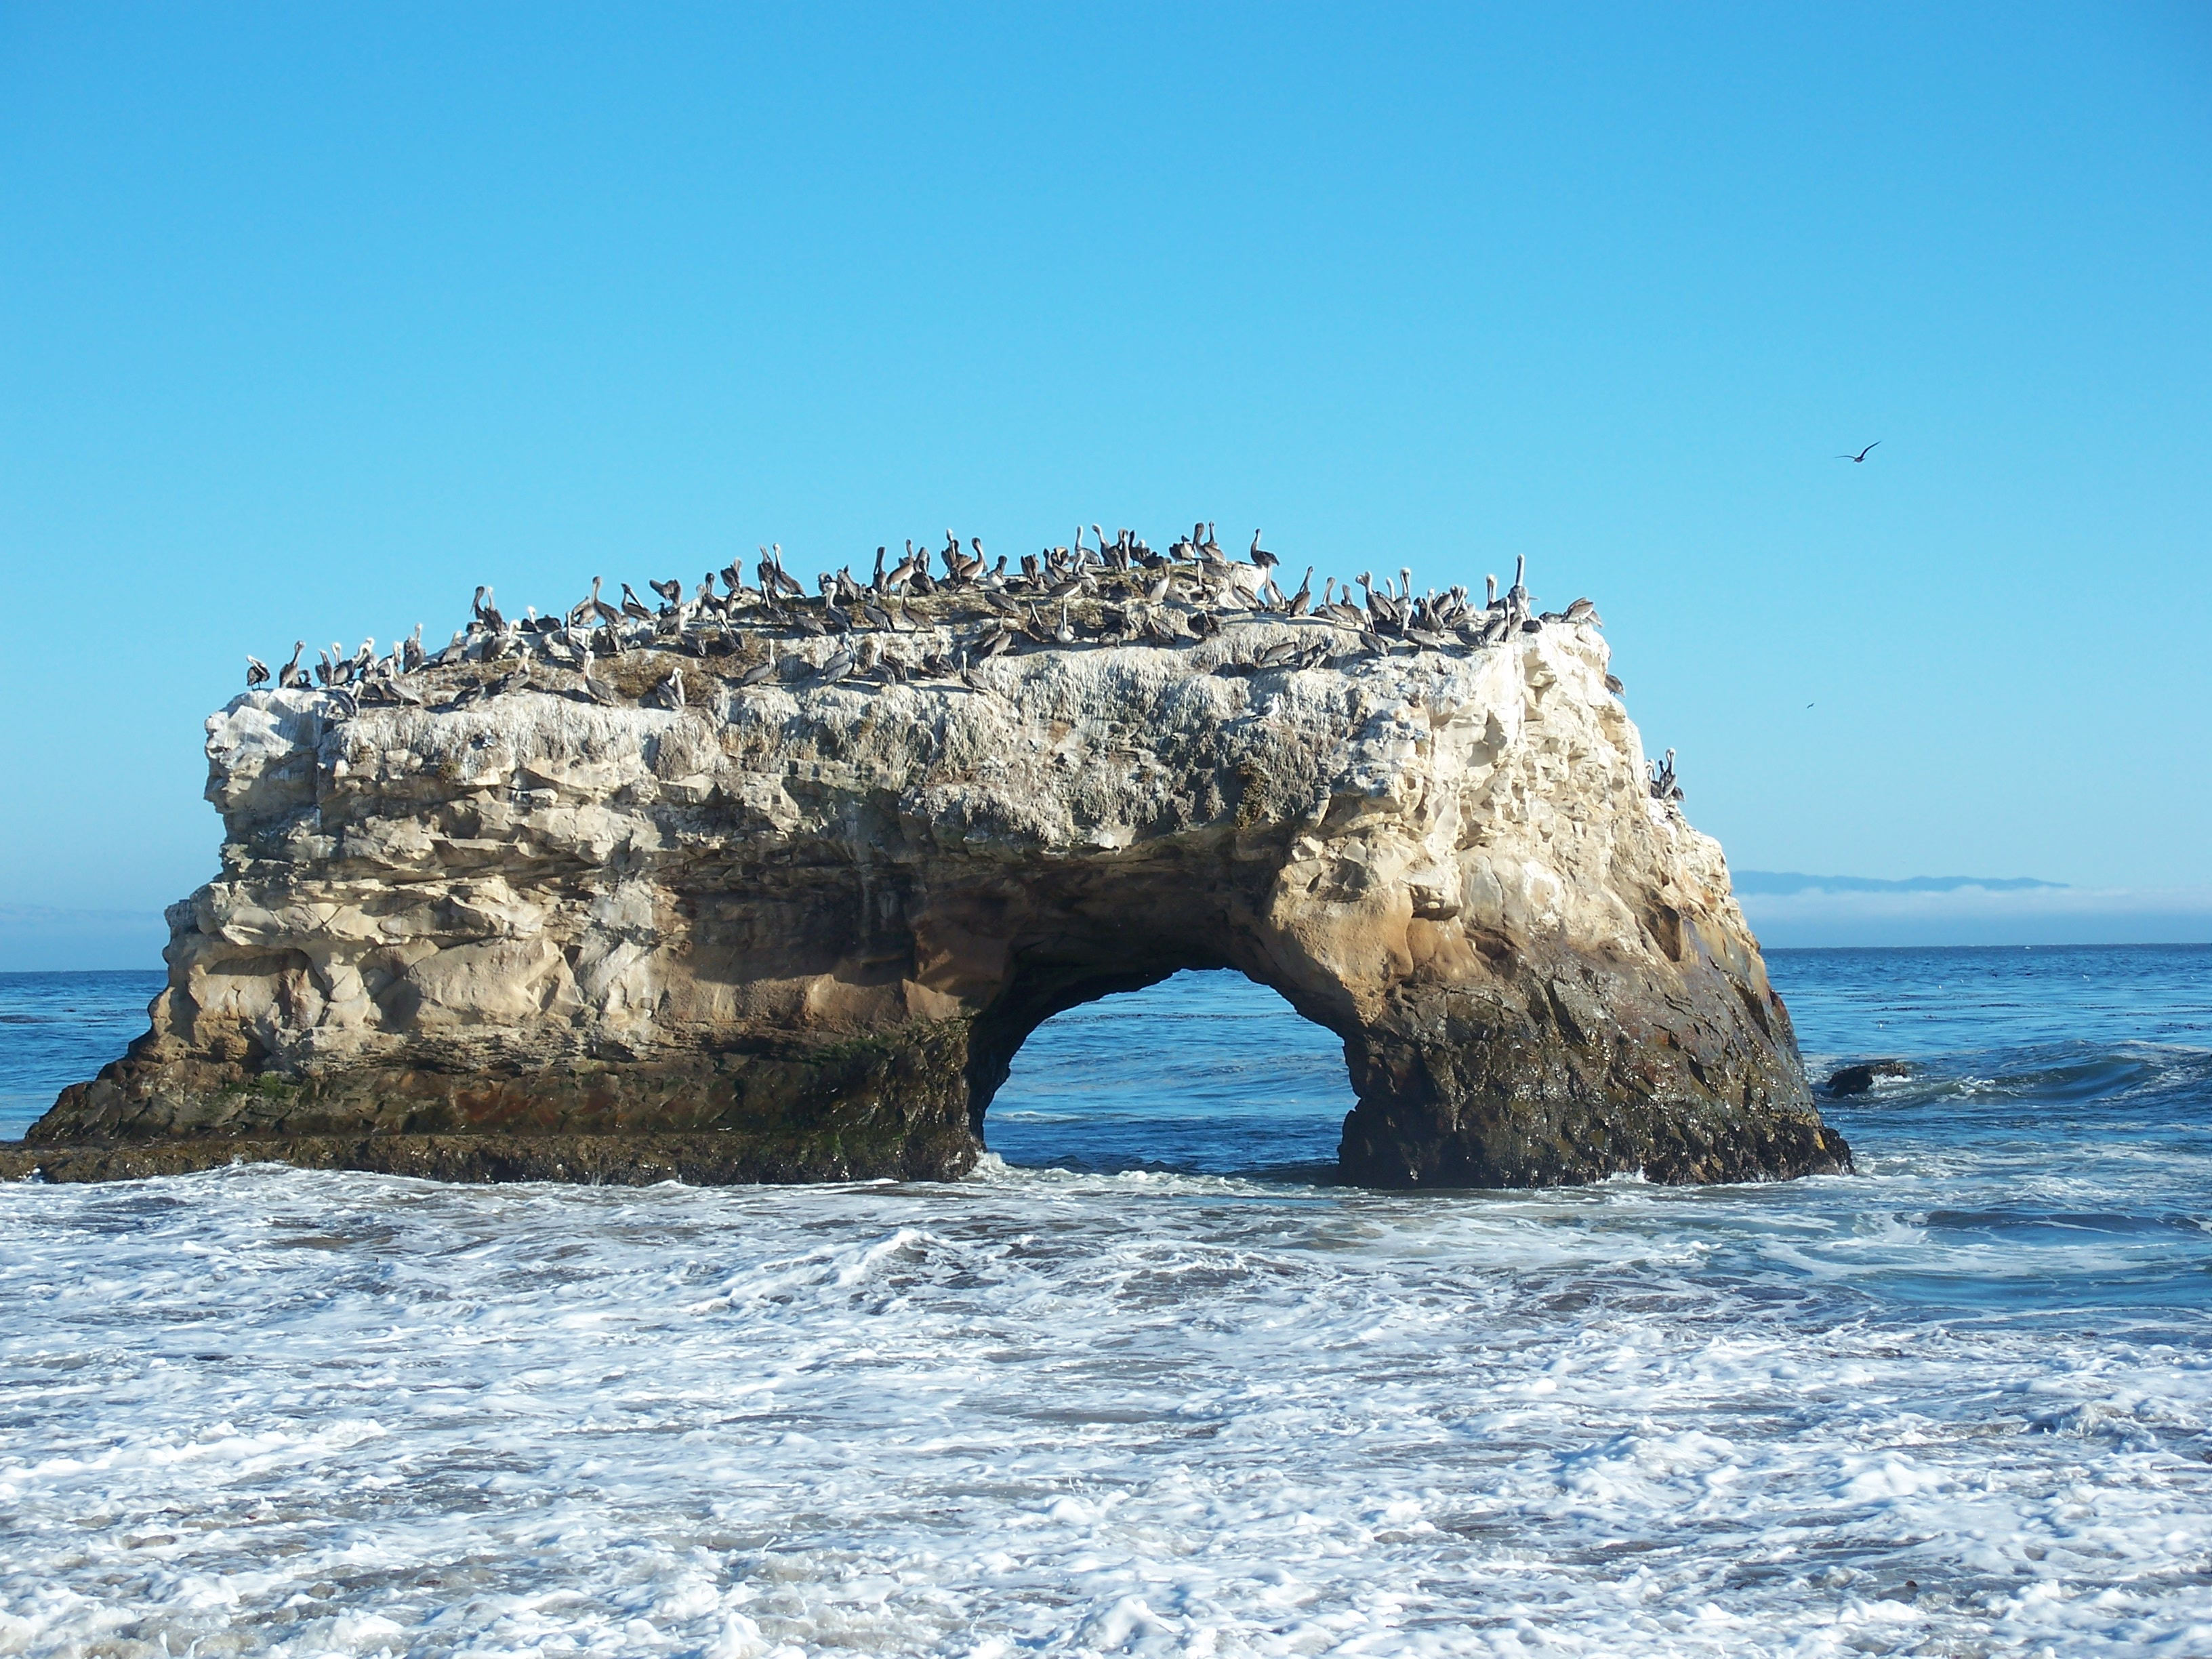 This Beach Features Stunning Views Of The Coastline And Its Animal Inhabitants At One Time There Were Three These Natural Bridges But Erosion